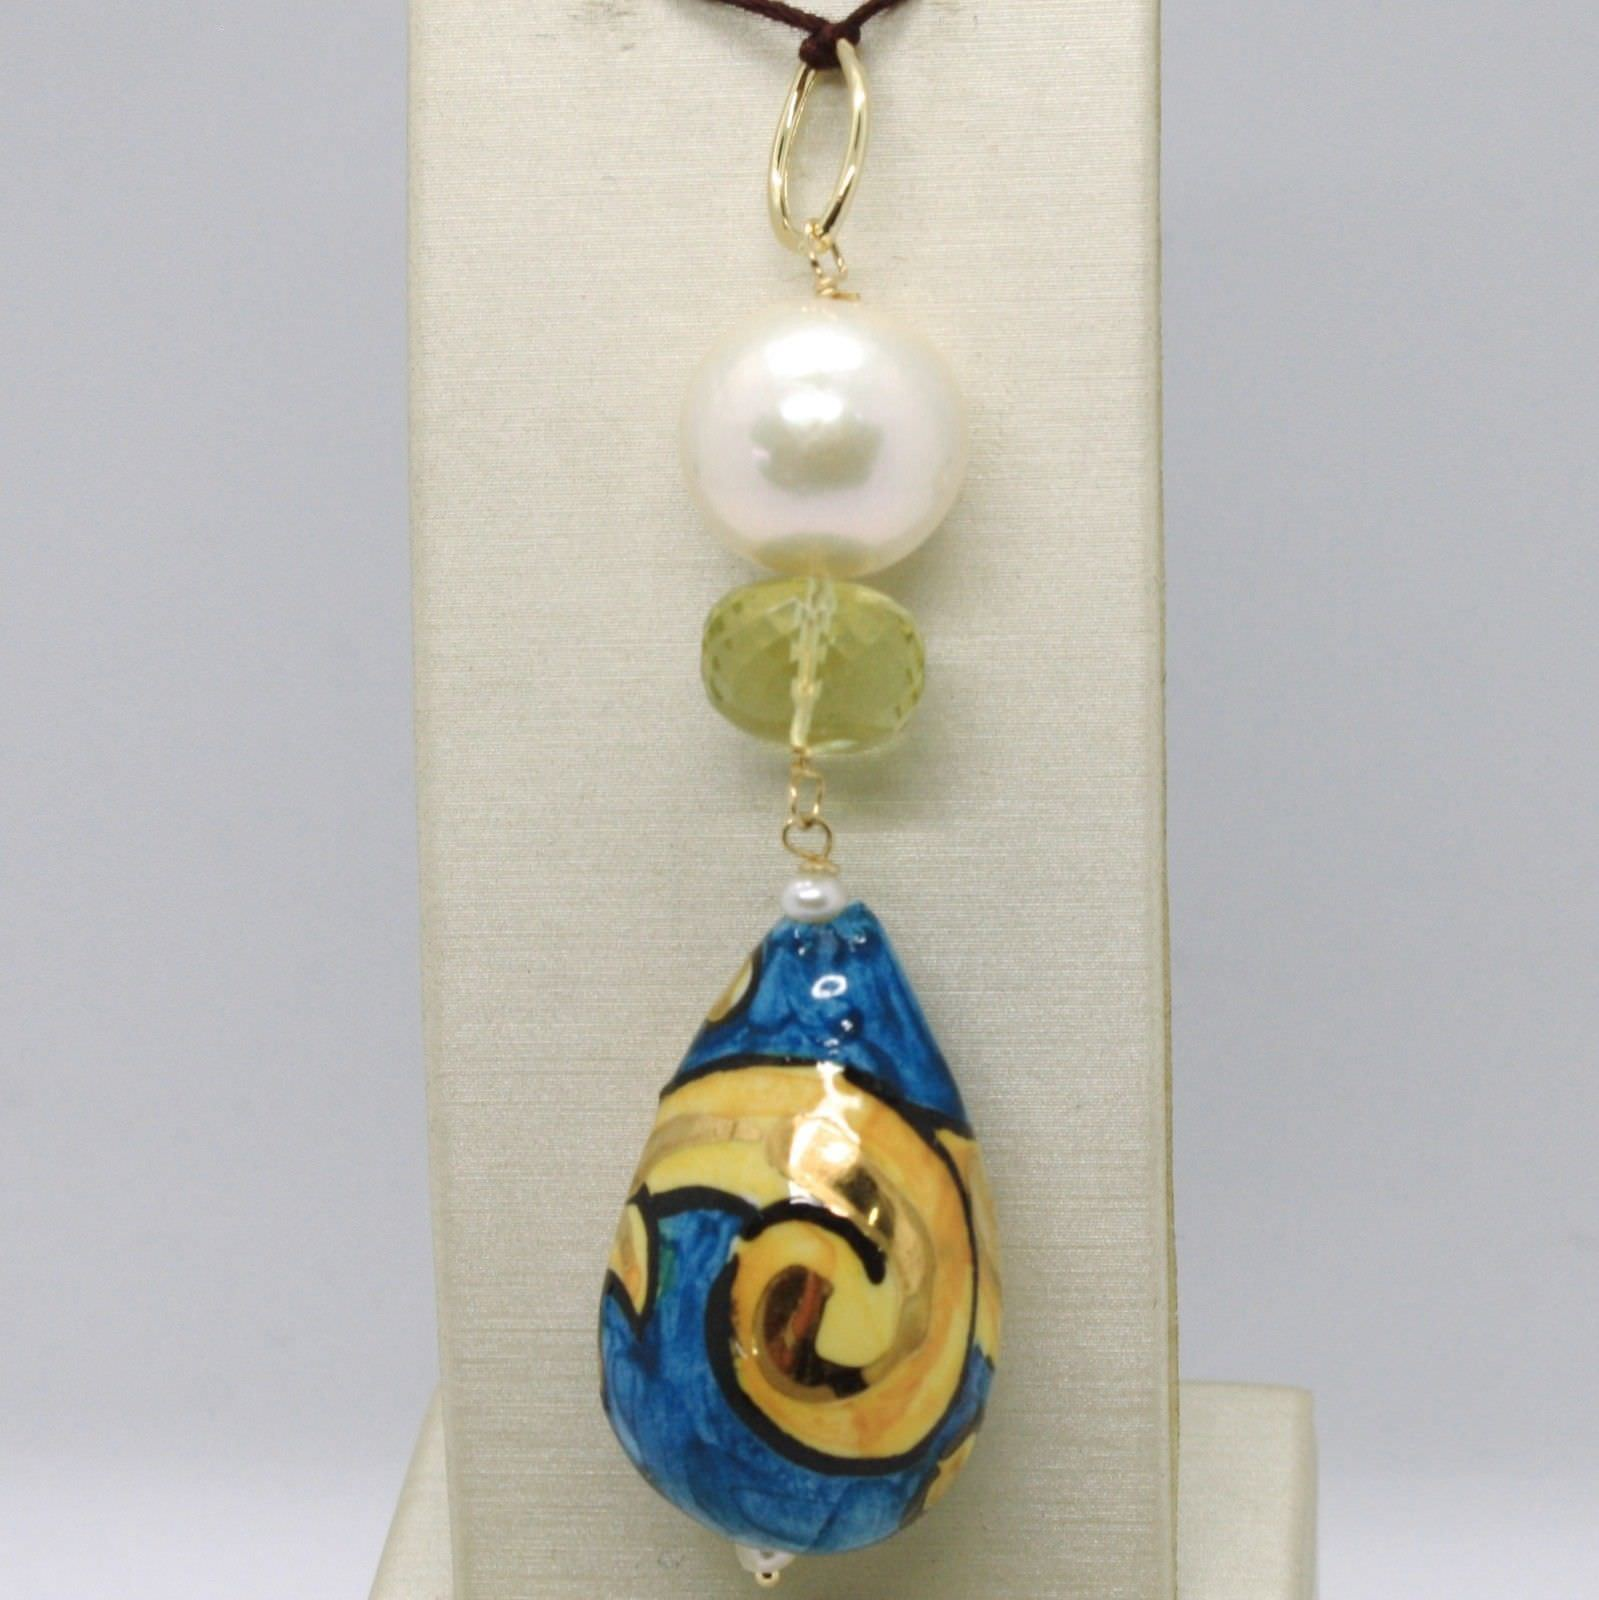 PENDANT YELLOW GOLD 18K 750 WITH PEARL QUARTZ AND CERAMICS BLUE MADE IN ITALY